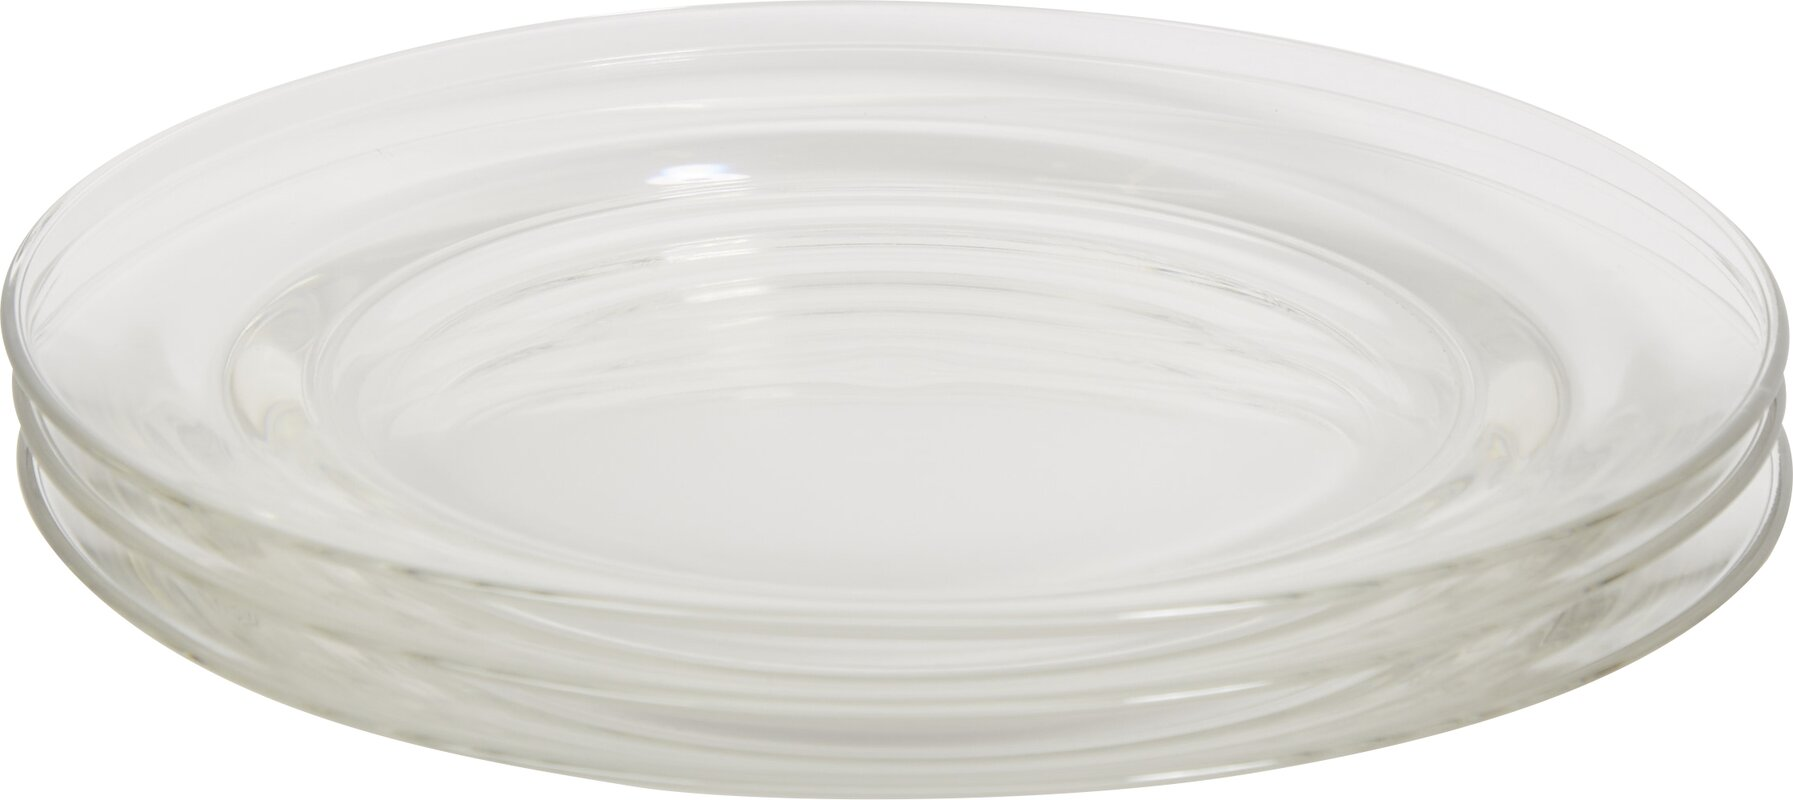 Wayfair Basics 11 in. Glass Dinner Plates